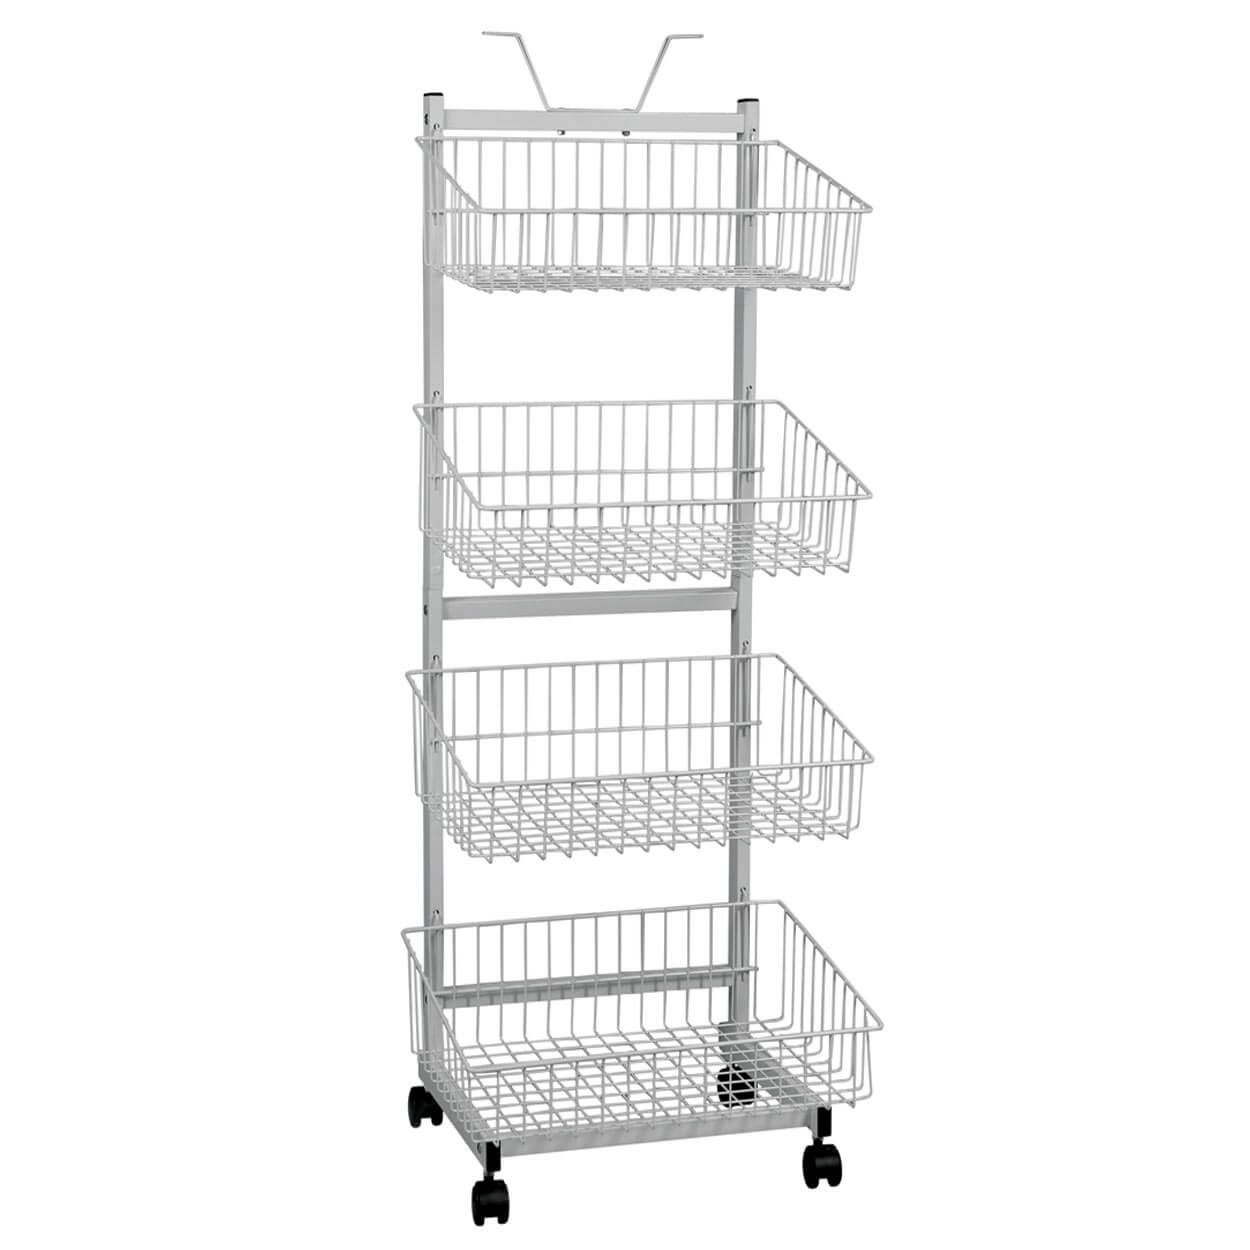 4 Basket mobile display stand